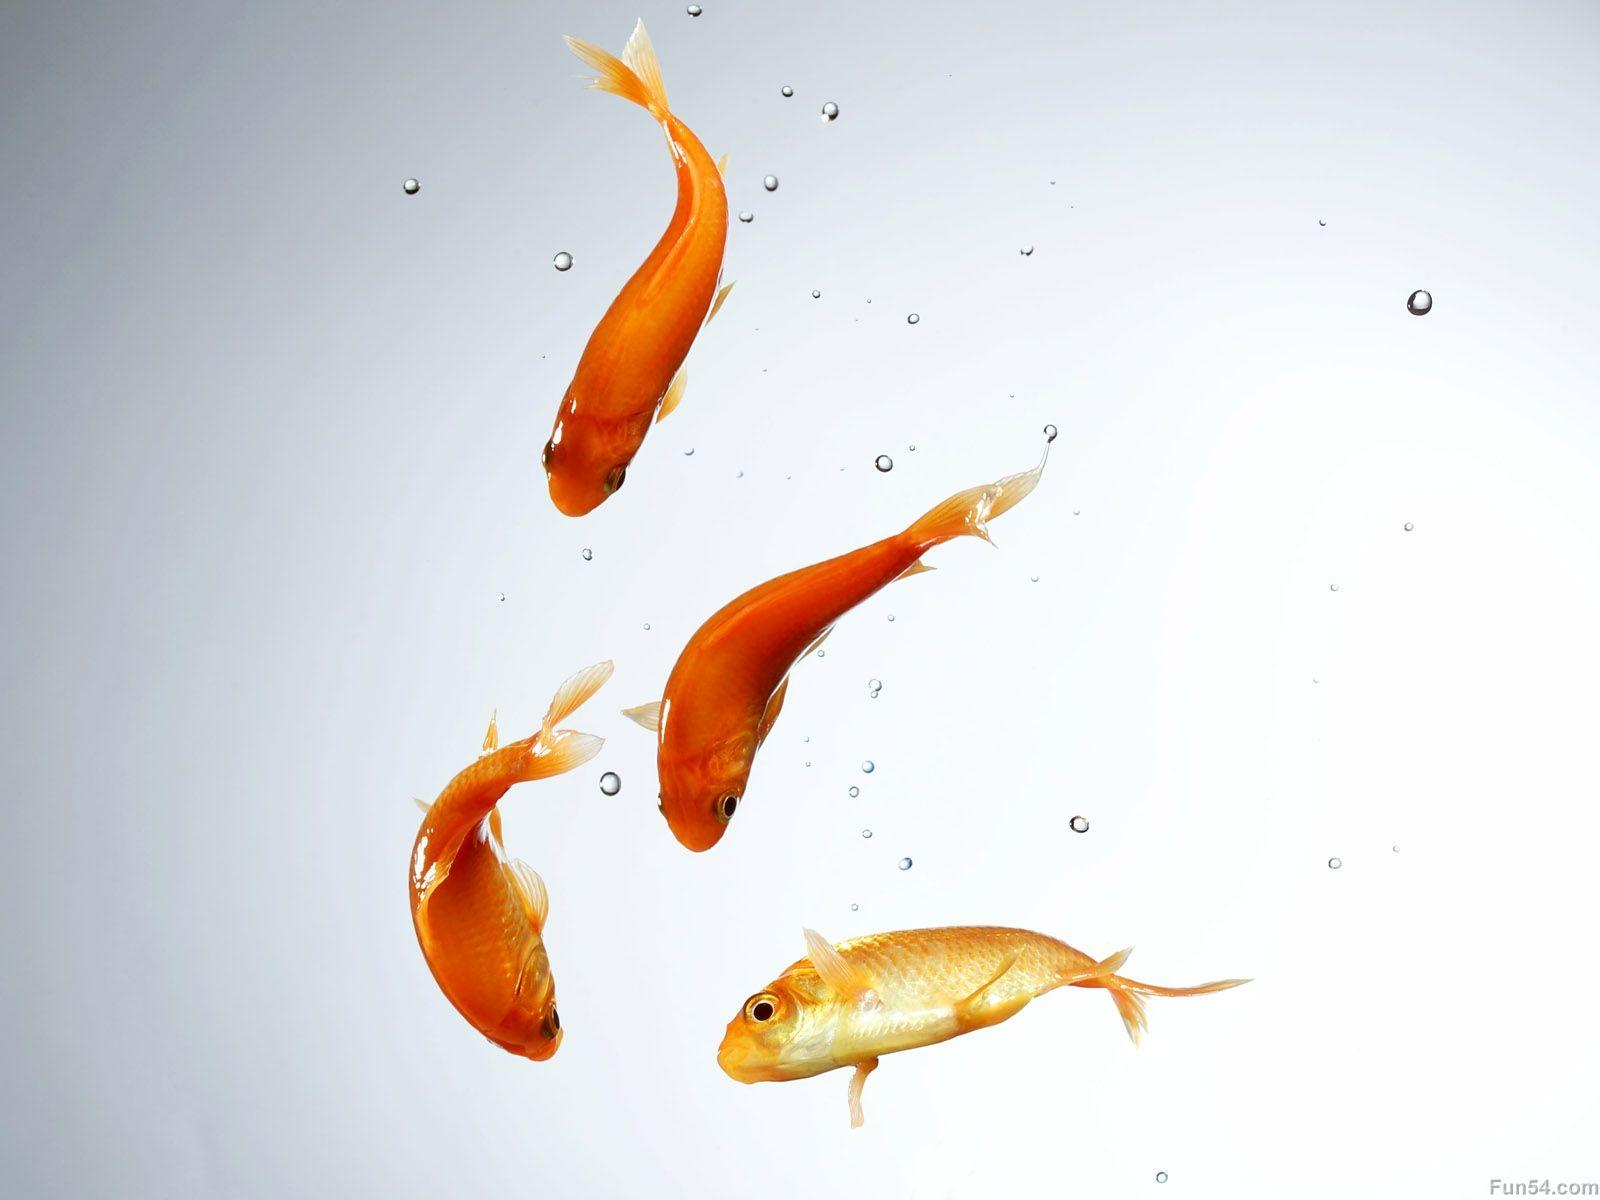 Four red and yellow fishs in the water with white backgrounds hd